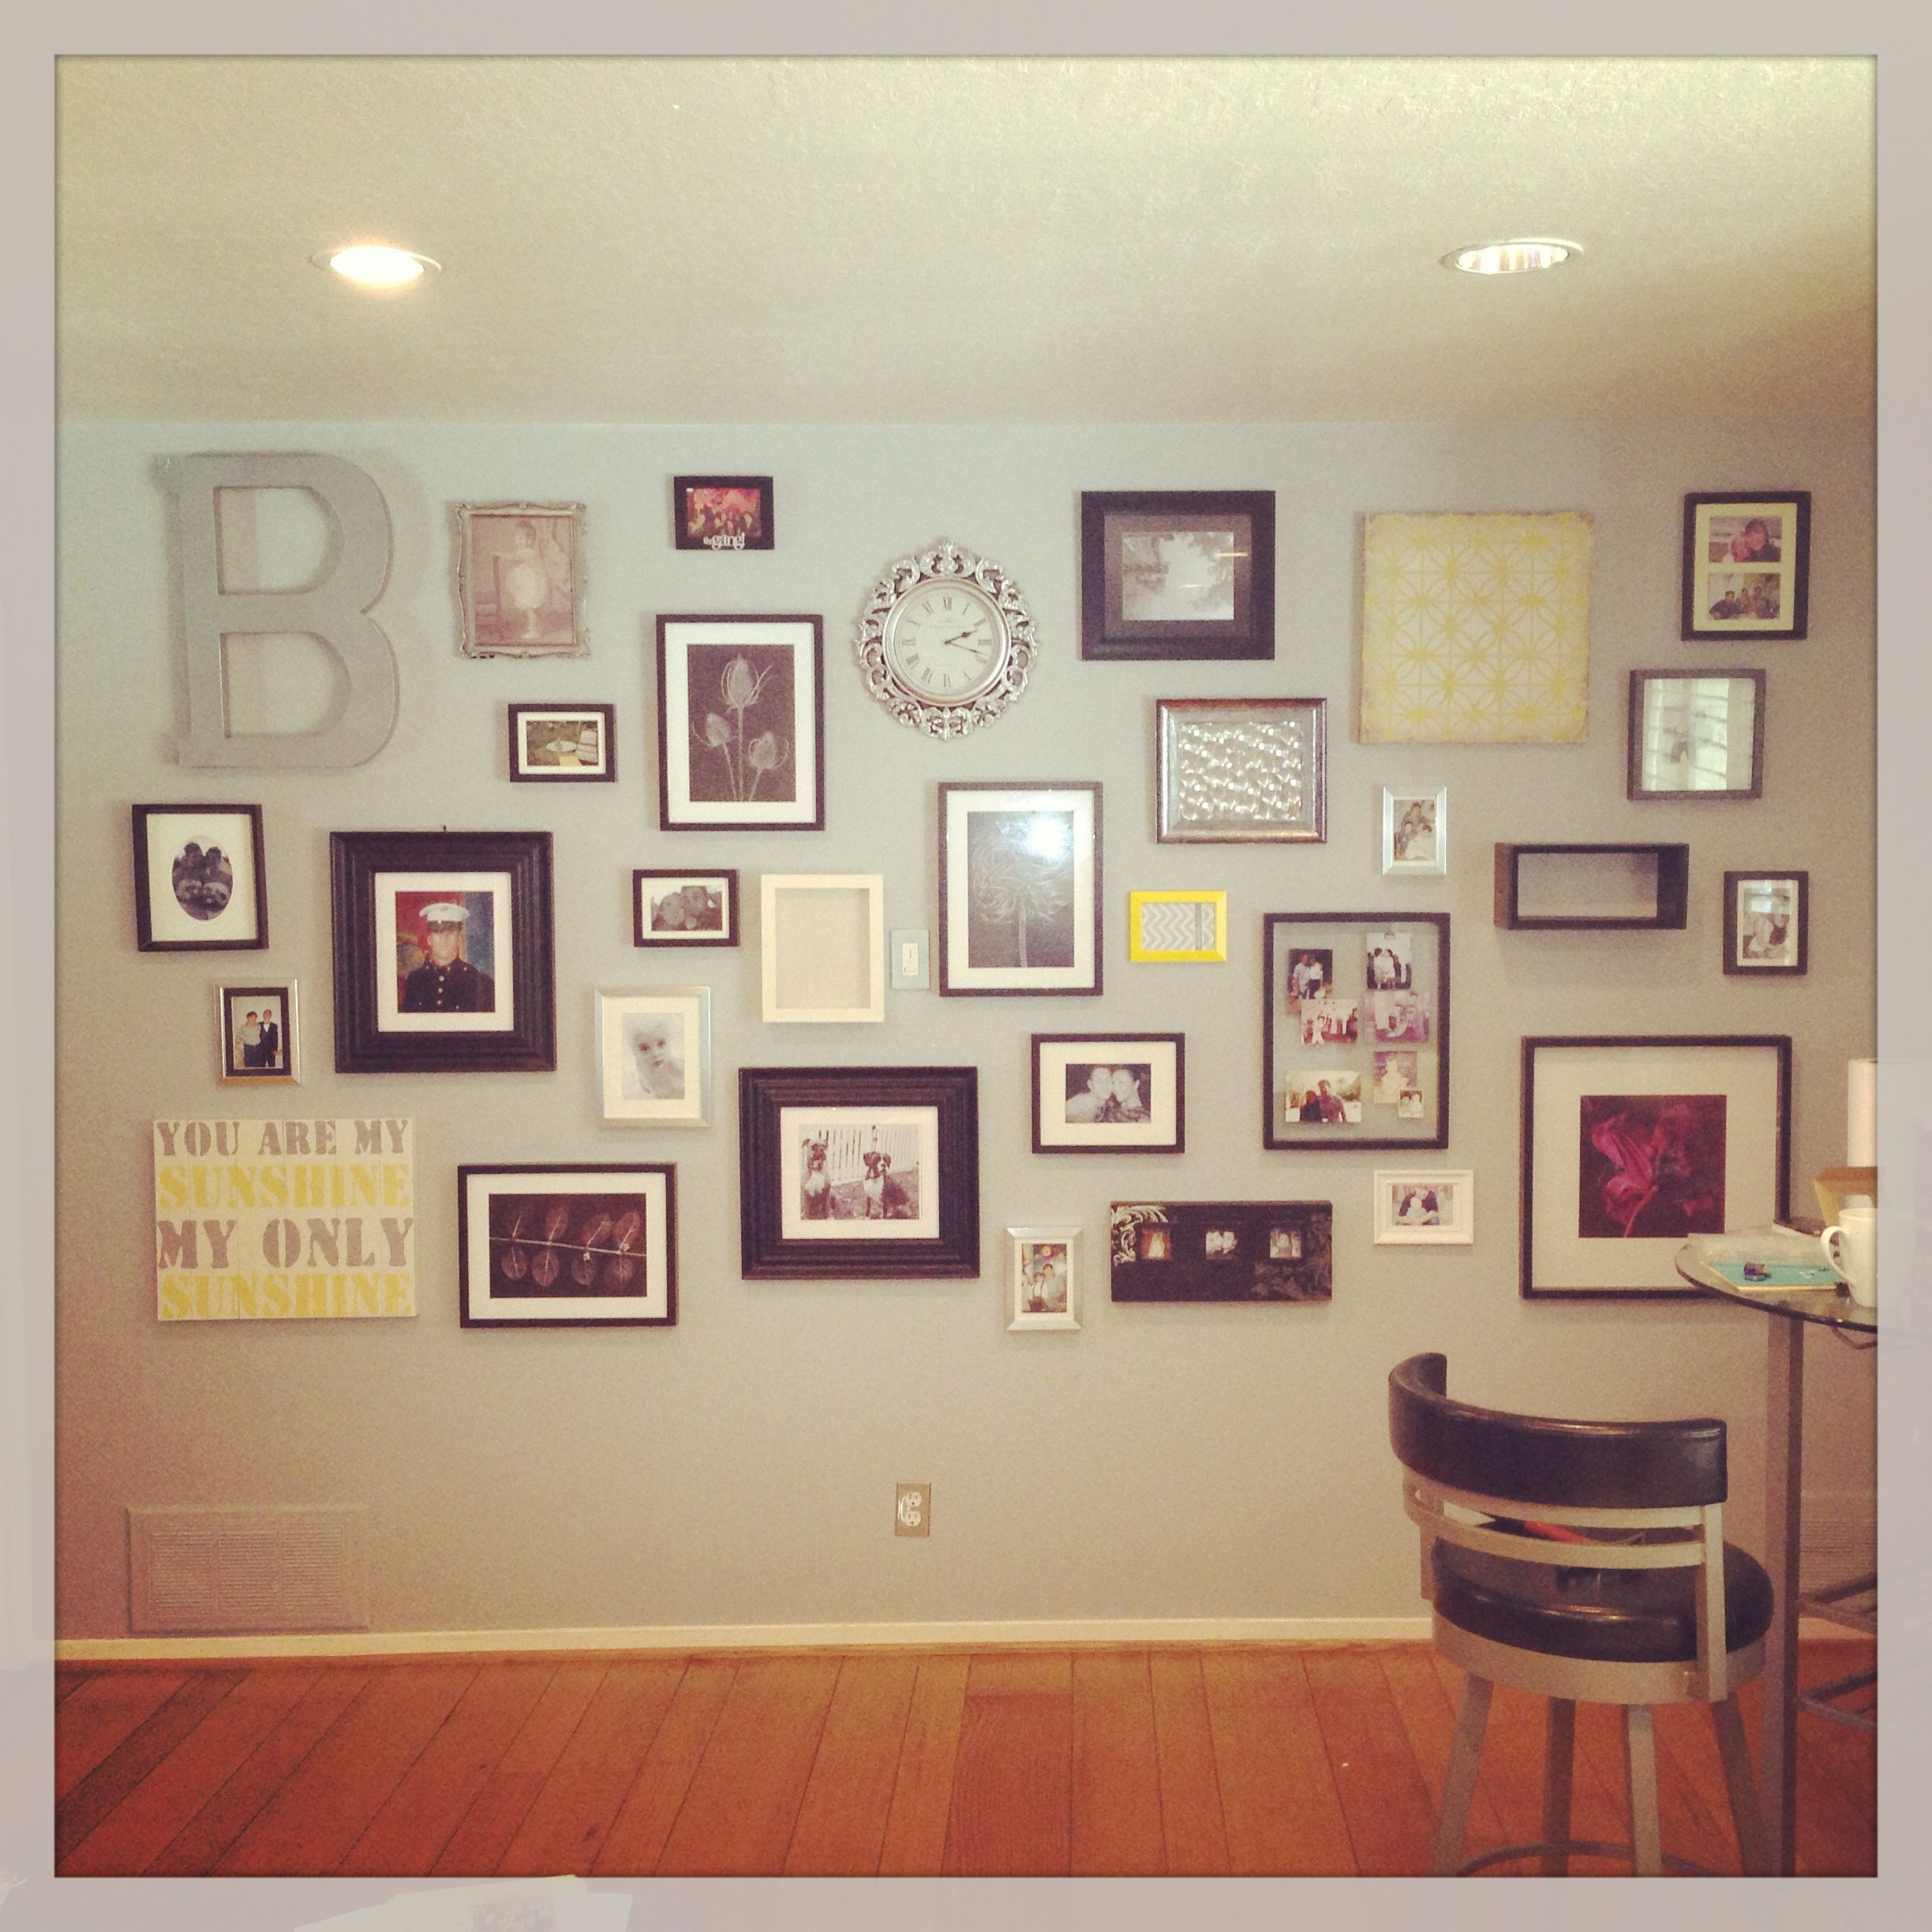 My wall collage home projects home decor home wall collage - Wall collage ideas living room ...